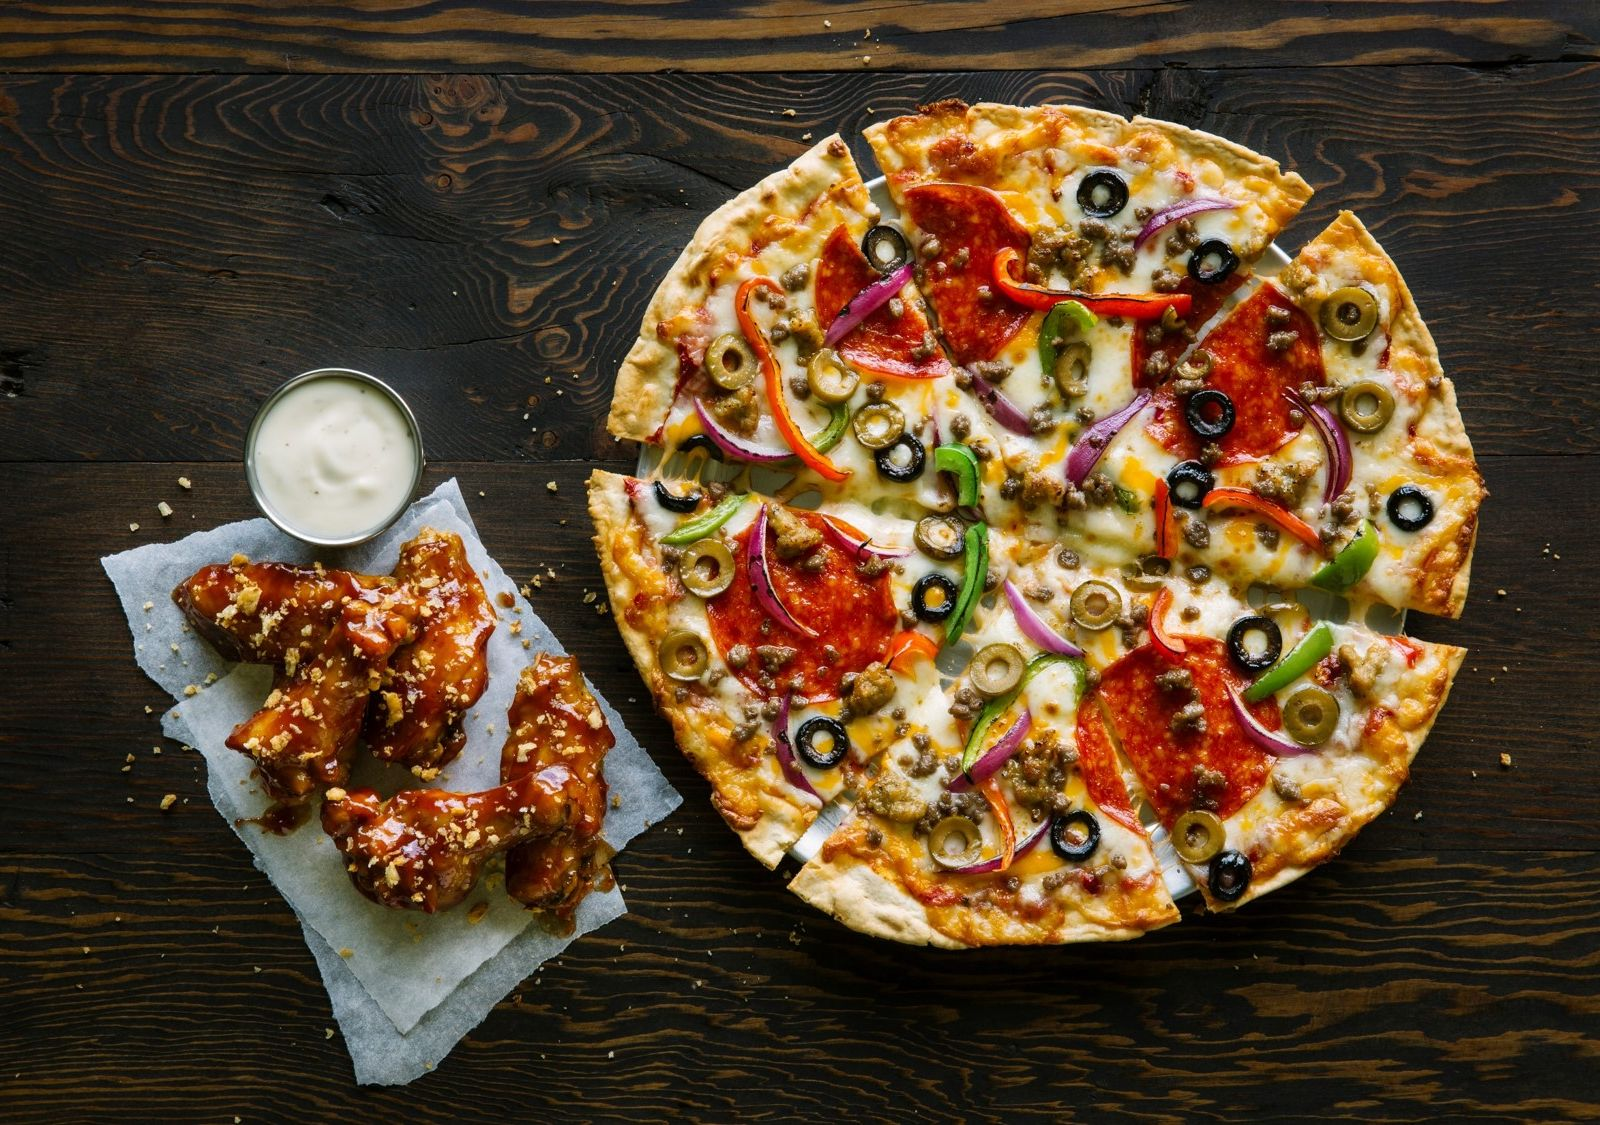 Pie Five Brings Personalized Pizza To East Brunswick